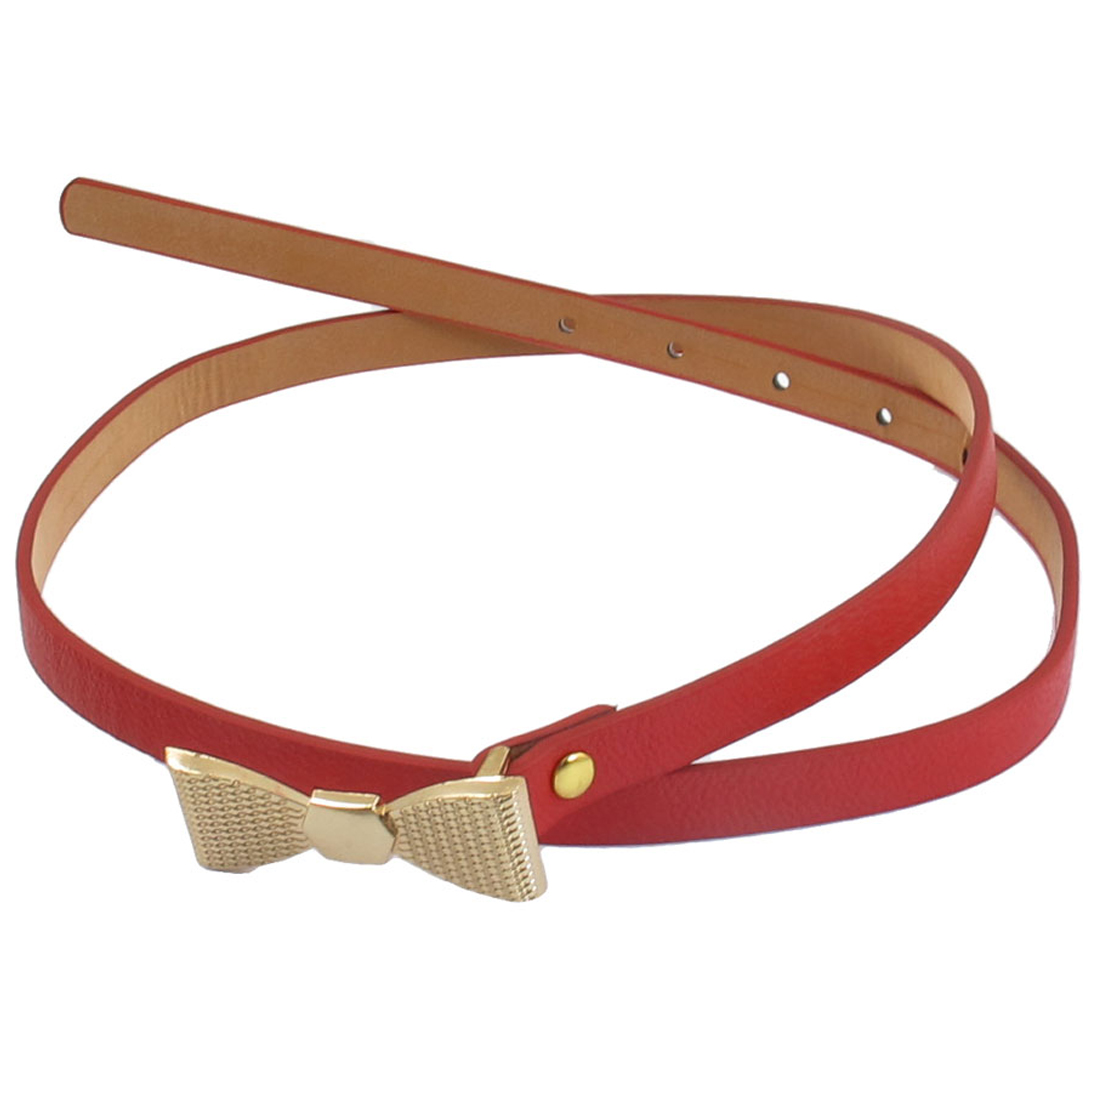 Ladies Red Bowknot Shaped Press Buckle One Size Slim Waistband Belt